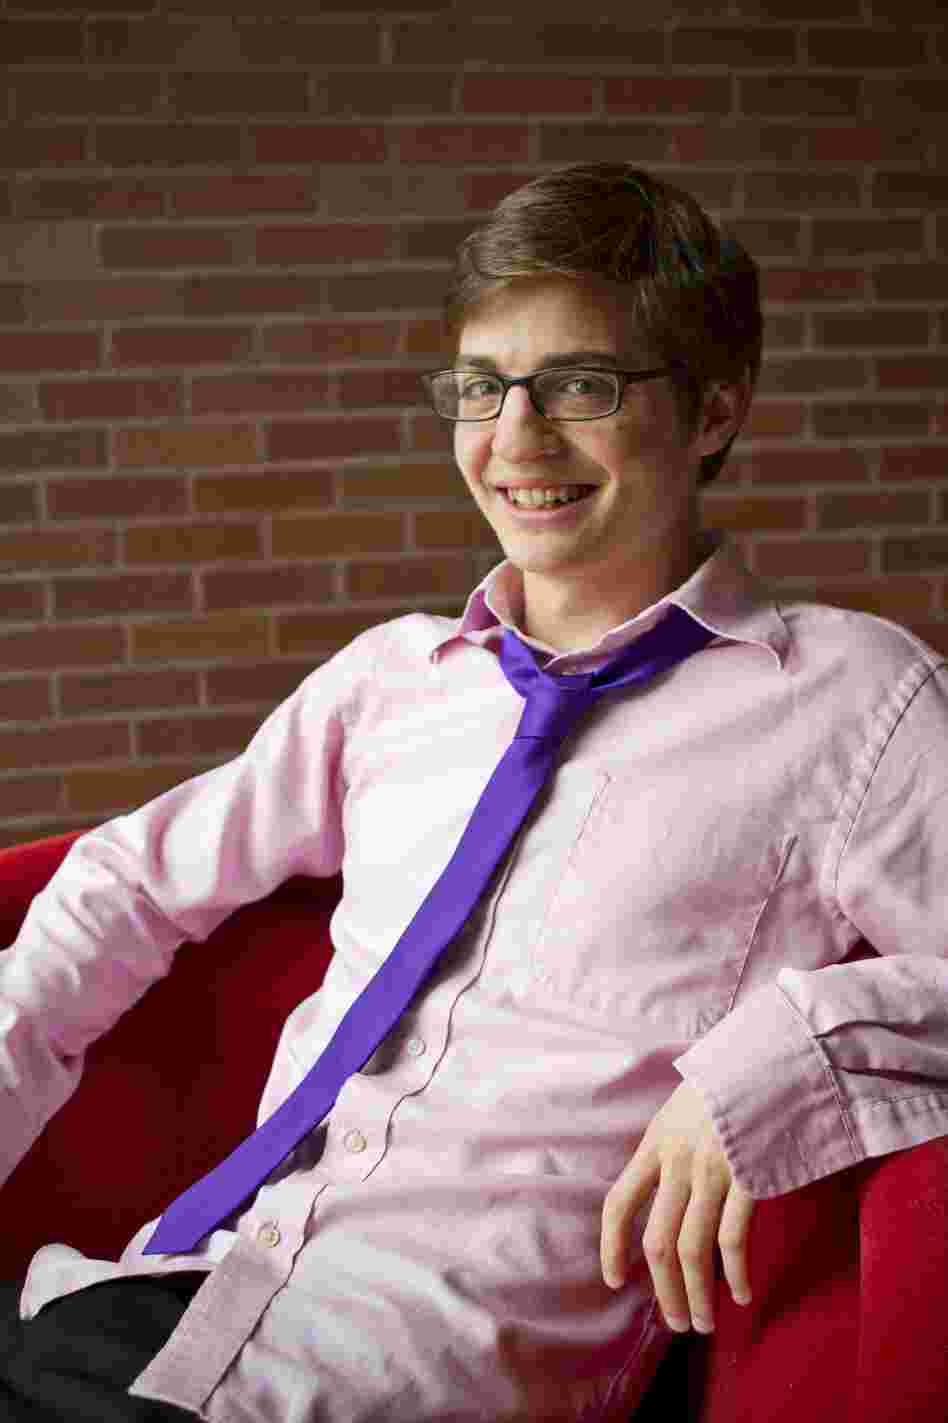 Simon Rich has written for The New Yorker and Saturday Night Live, and currently writes for Pixar.